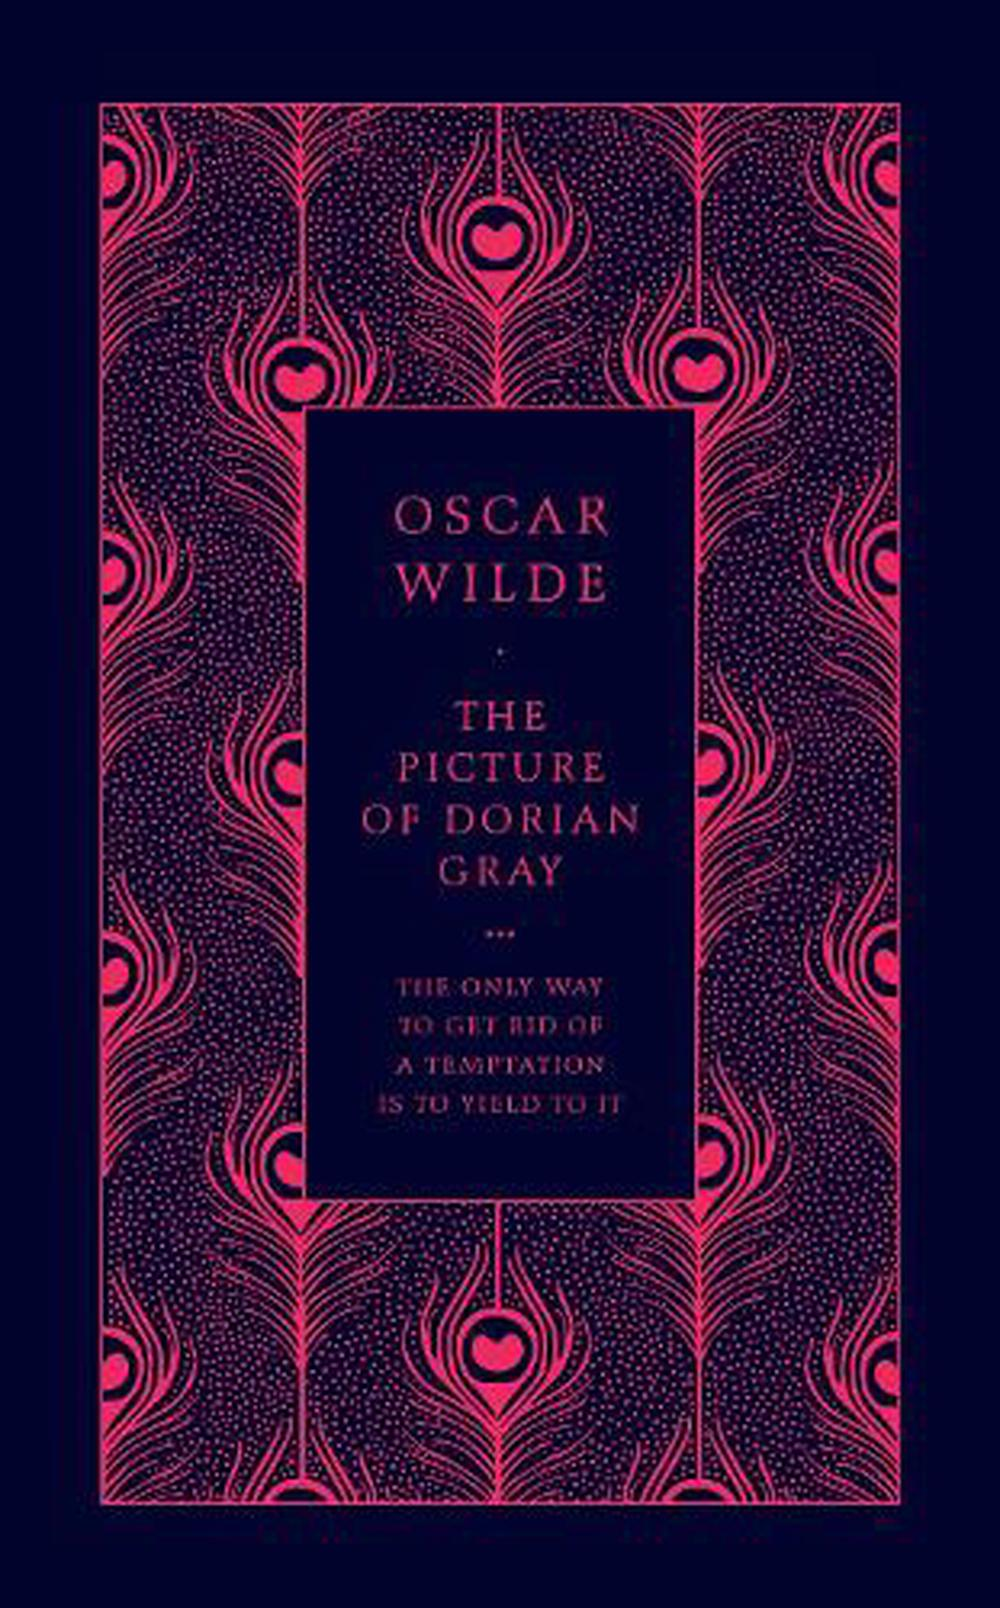 Picture-of-Dorian-Gray-Wts-by-Wilde-Oscar-Hardcover-Book-Free-Shipping